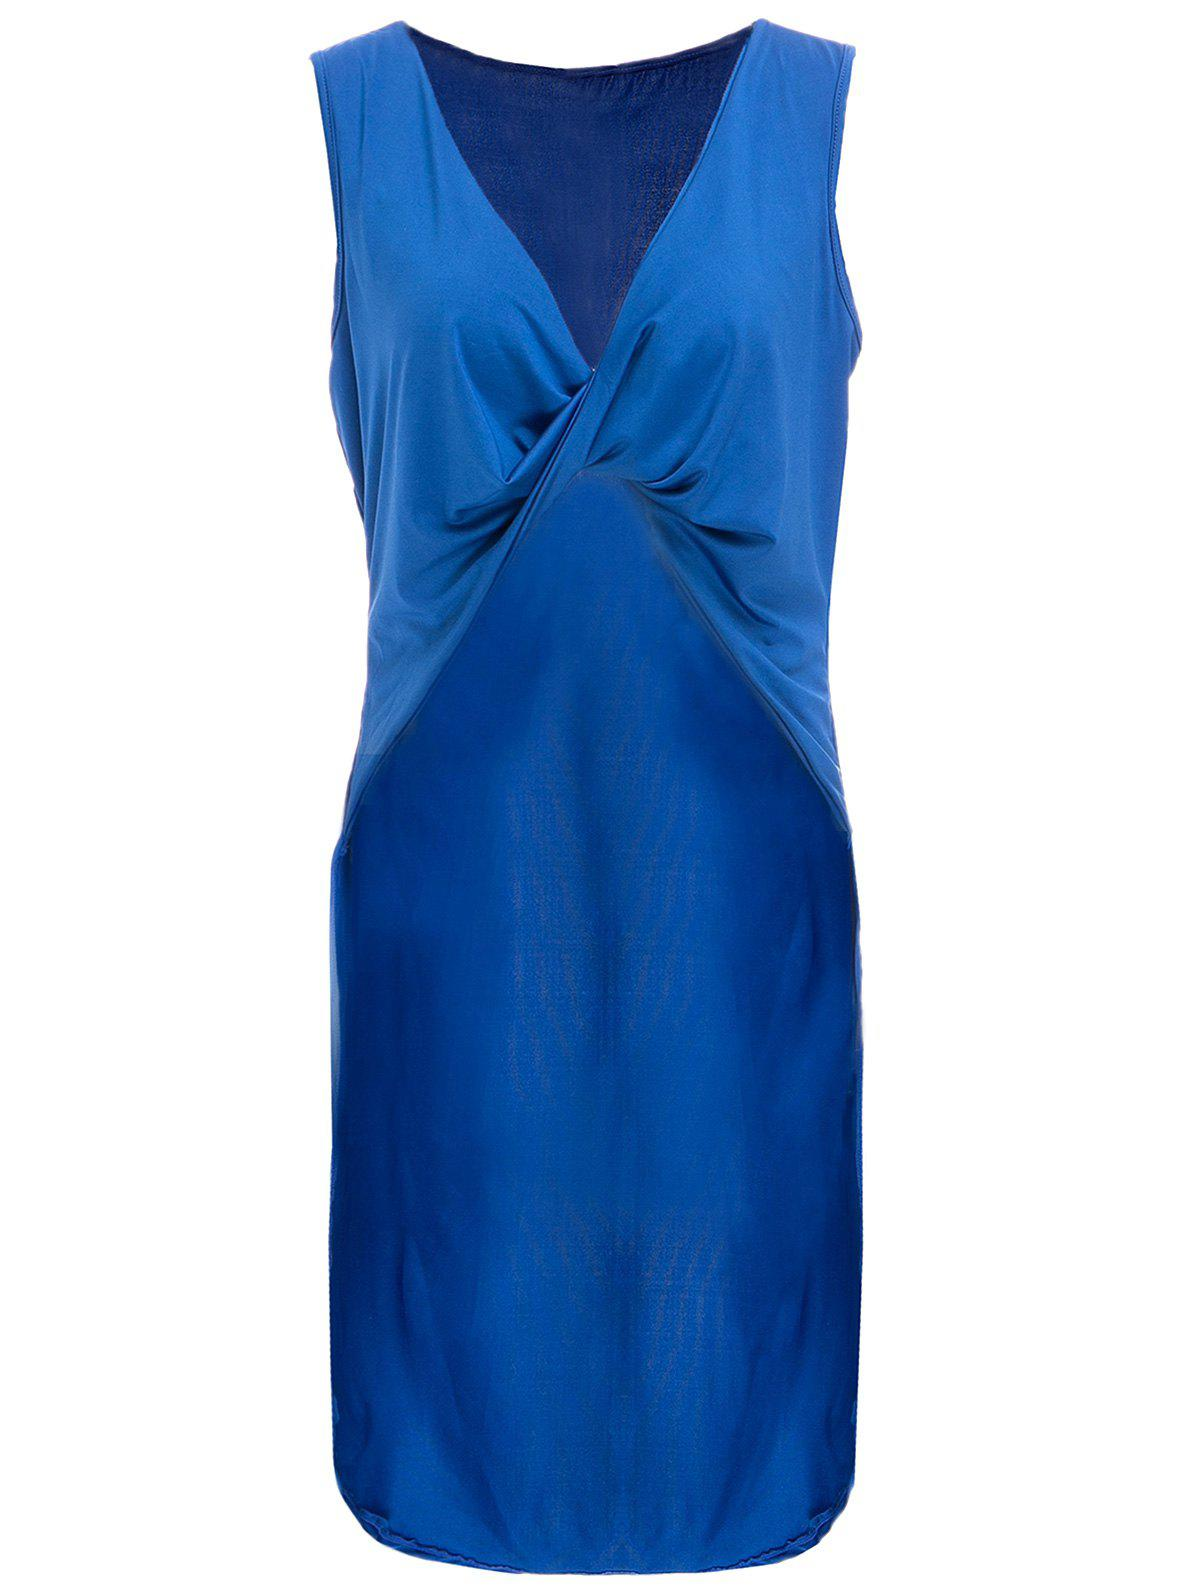 Chic Women's Plunging Neck Blue High Low Sleeveless Top - BLUE 2XL